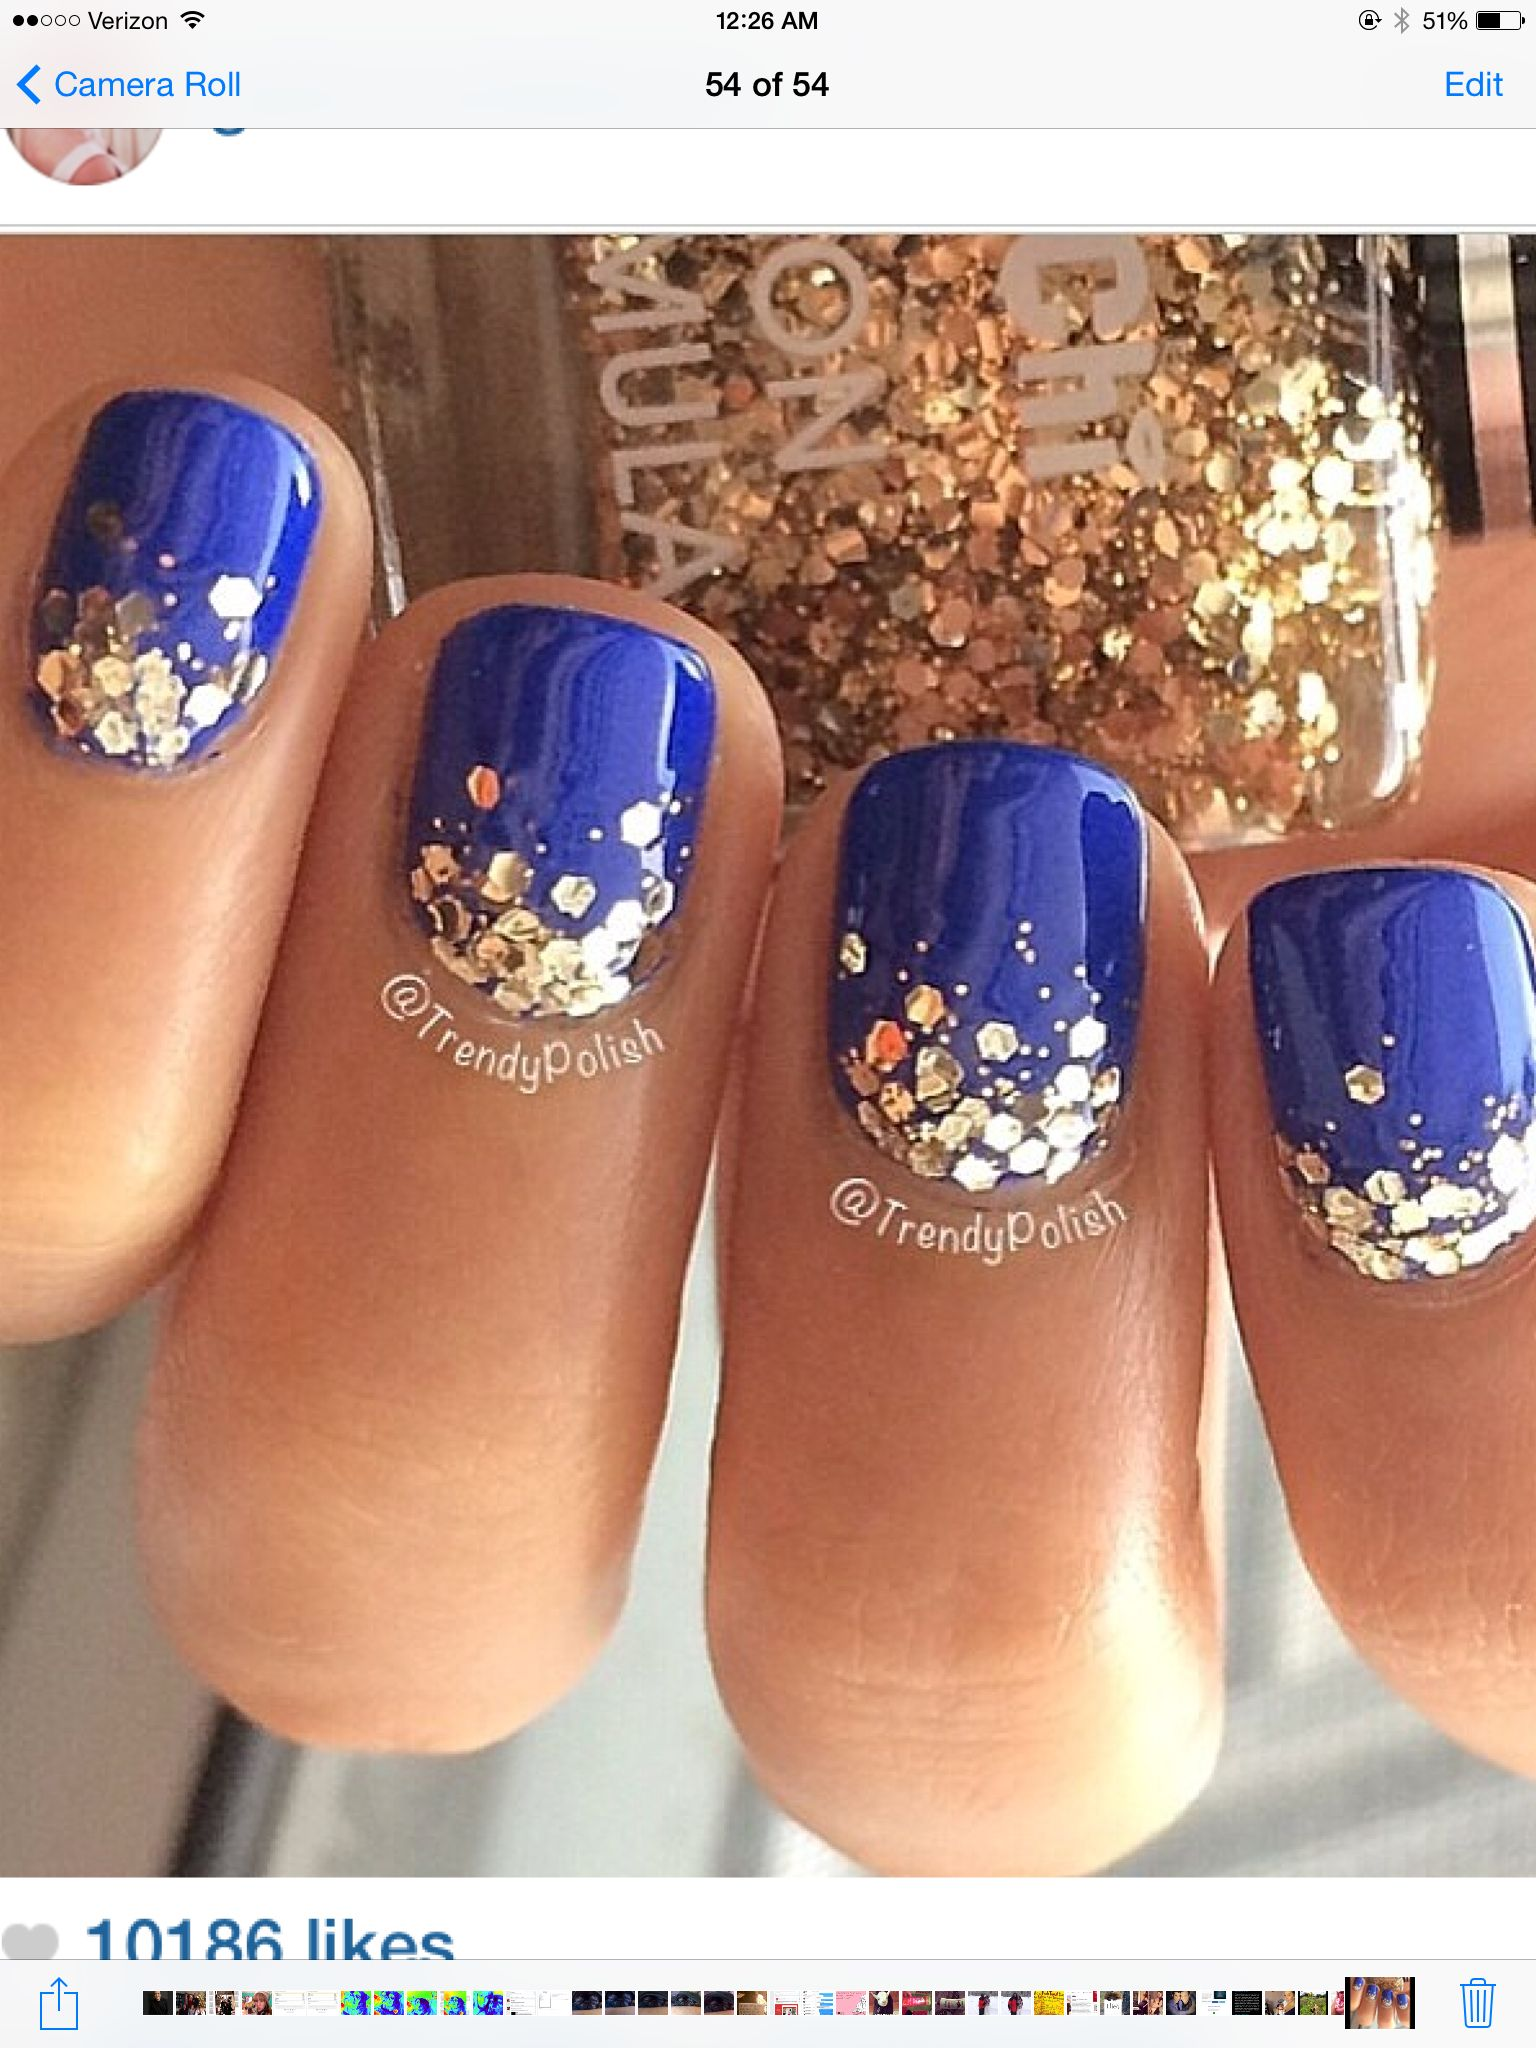 Blue with glitter | Nails | Pinterest | Beauty nails, Manicure and ...